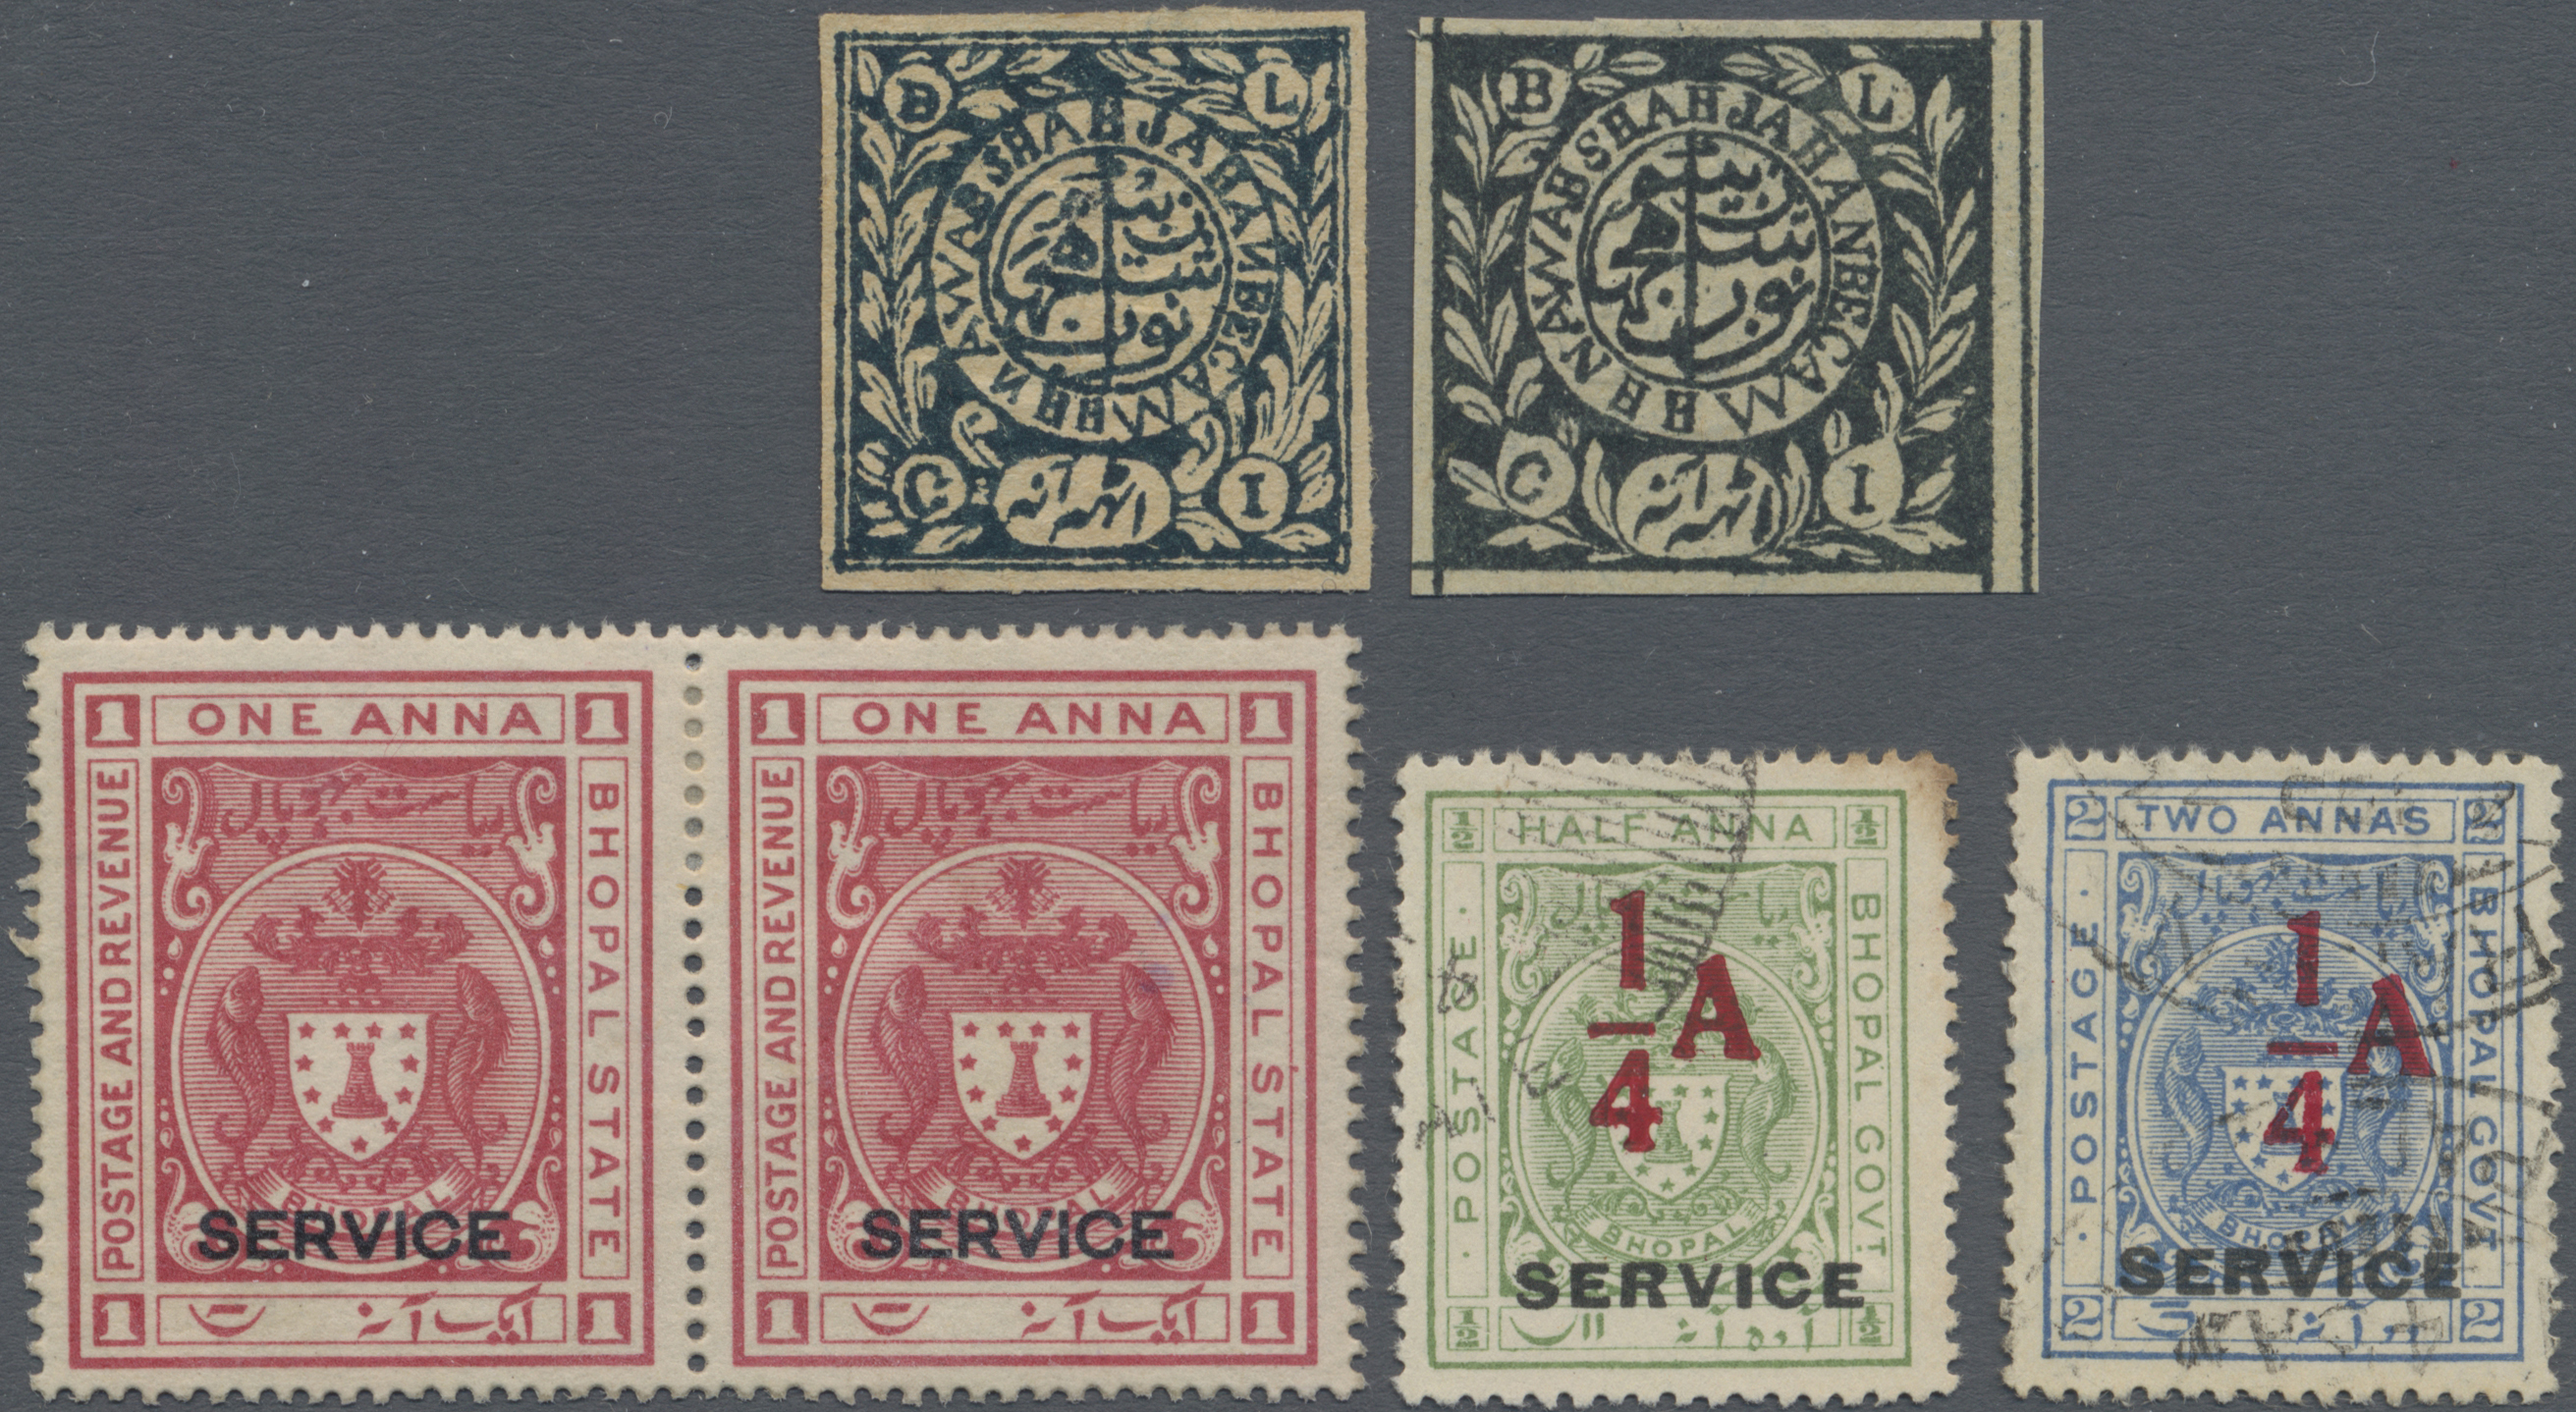 Lot 19209 - Indien - Feudalstaaten - Bhopal  -  Auktionshaus Christoph Gärtner GmbH & Co. KG Sale #47 Collections: Overseas, Thematics, Europe